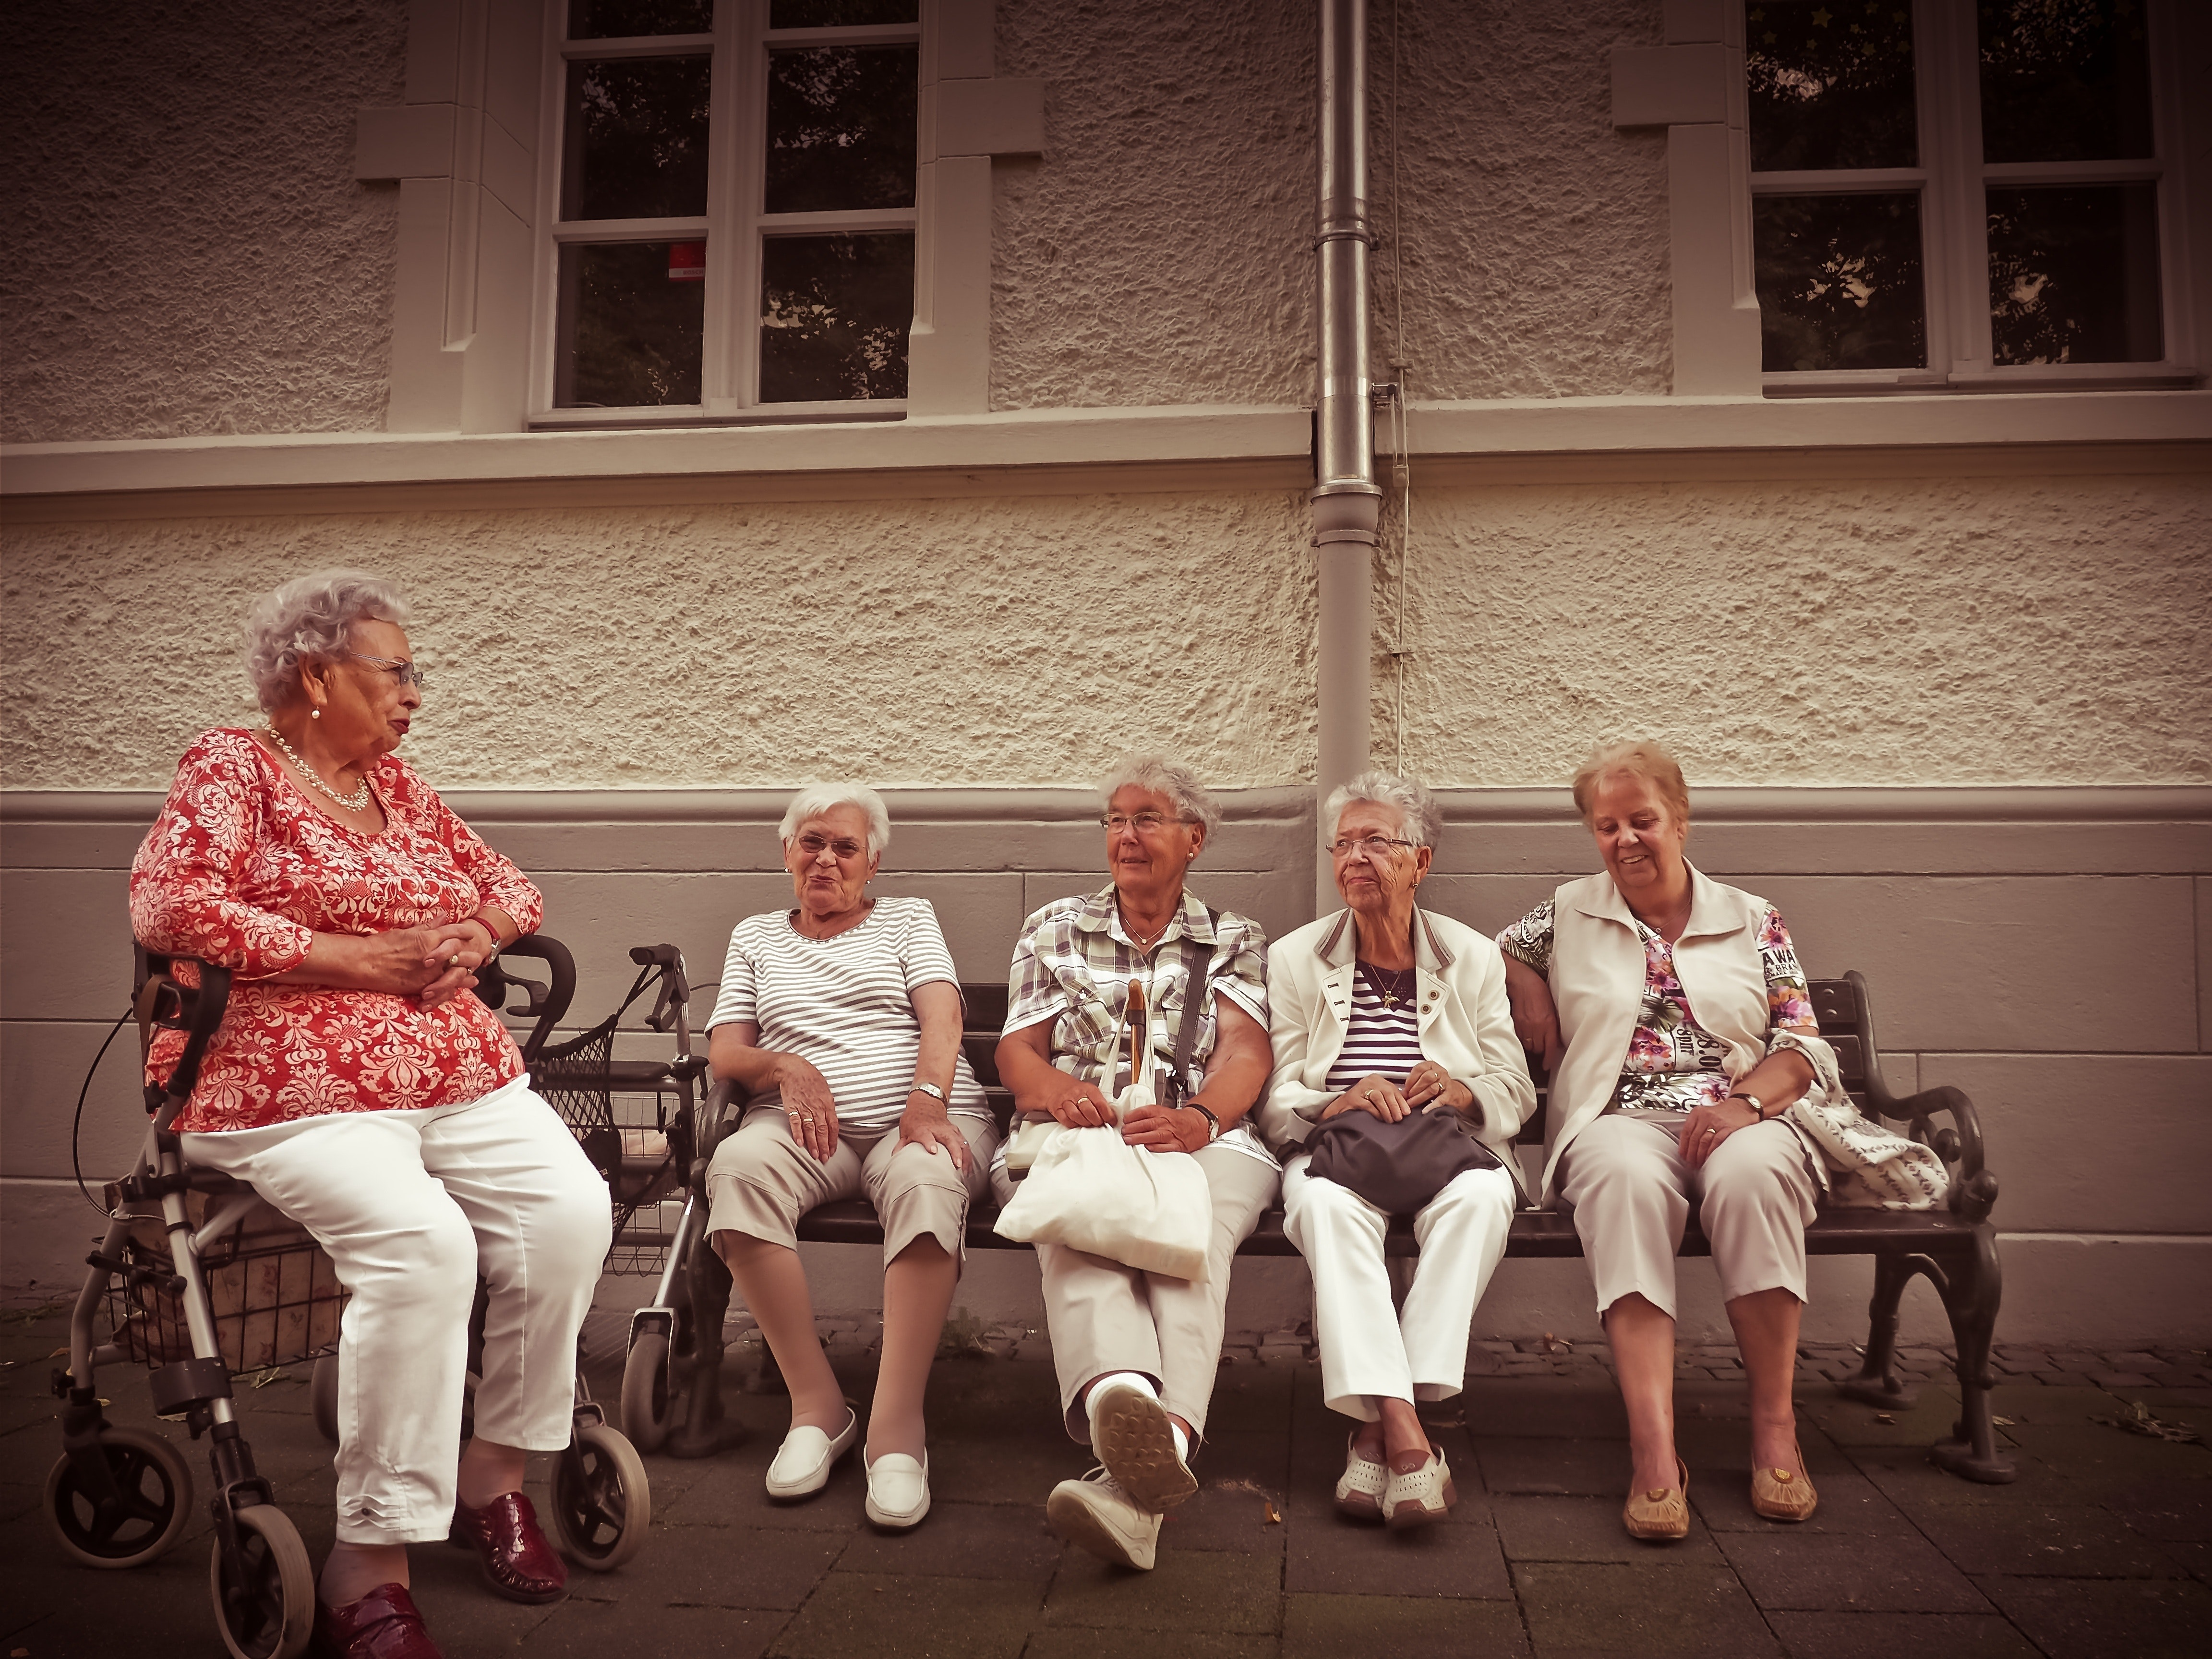 A group of senior women sitting together discussing secrets to living longer.